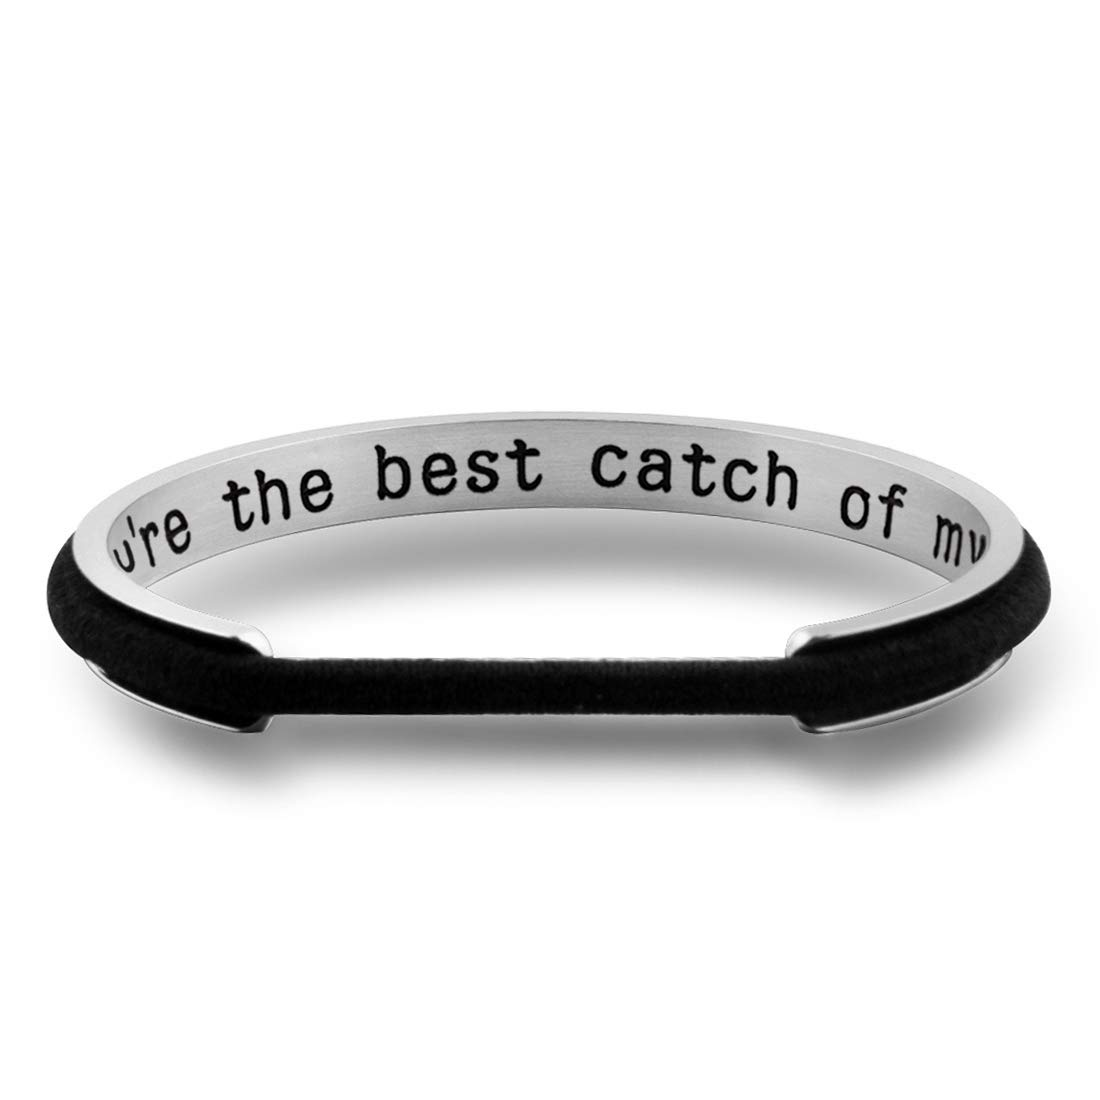 Zuo Bao Hair Tie Bracelet for Girlfriend Wife You are The Best Catch of My Life Cuff Bangle Funny Fishing Gift from Husband